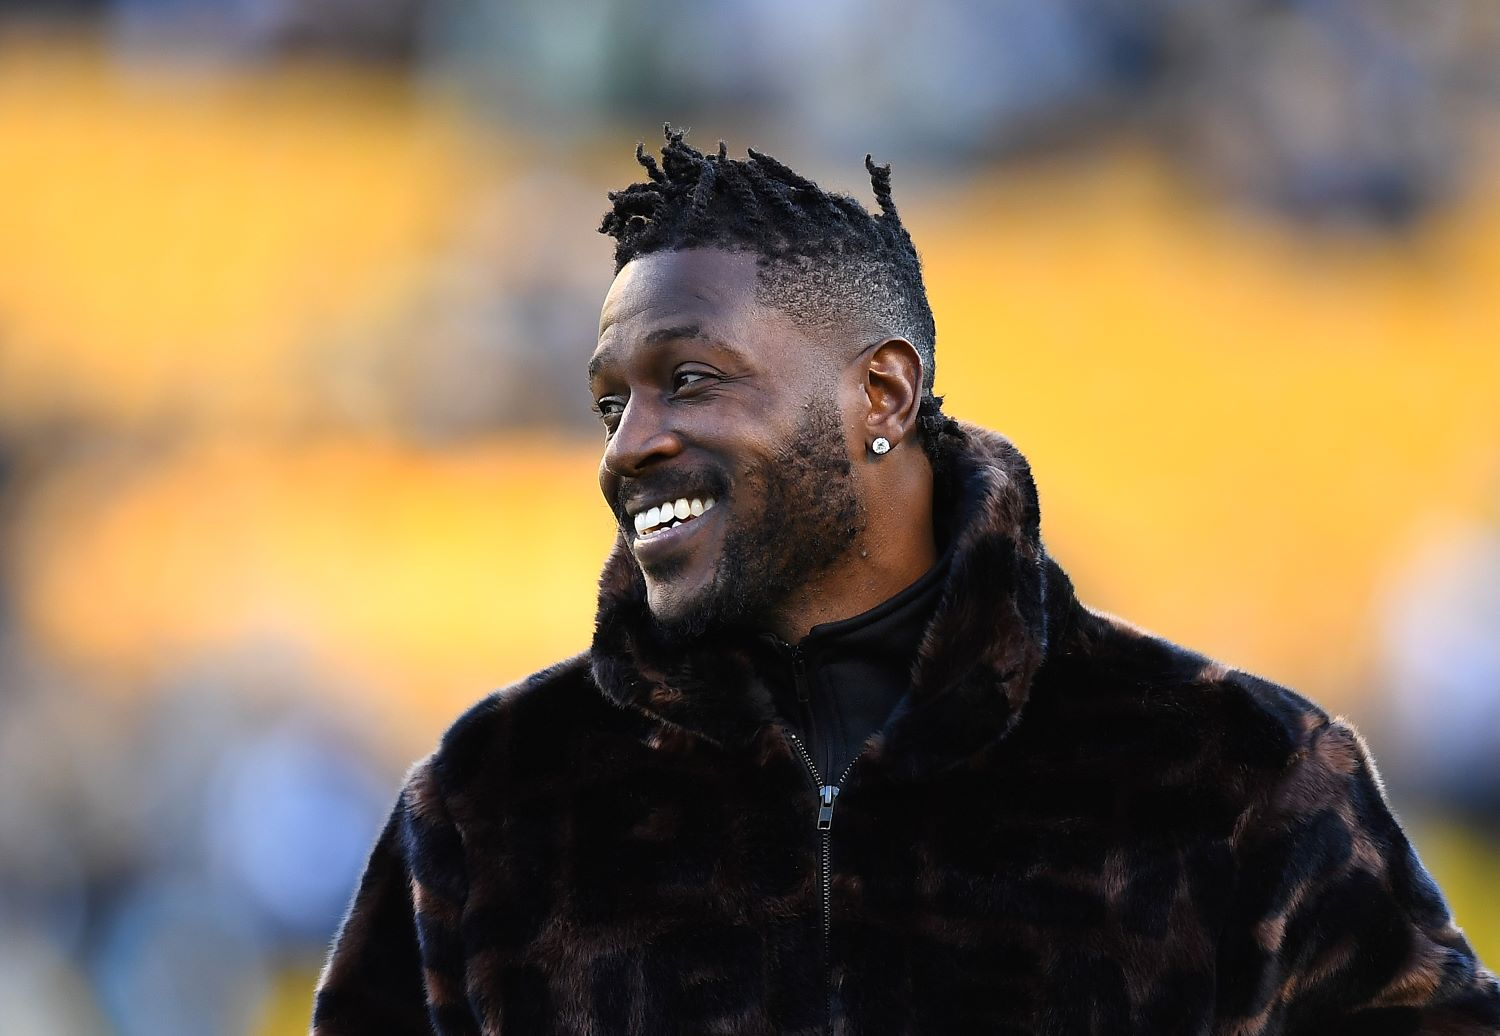 Antonio Brown will have to stay out of trouble and stay on the field if he wants to maximize his earnings with the Tampa Bay Buccaneers.